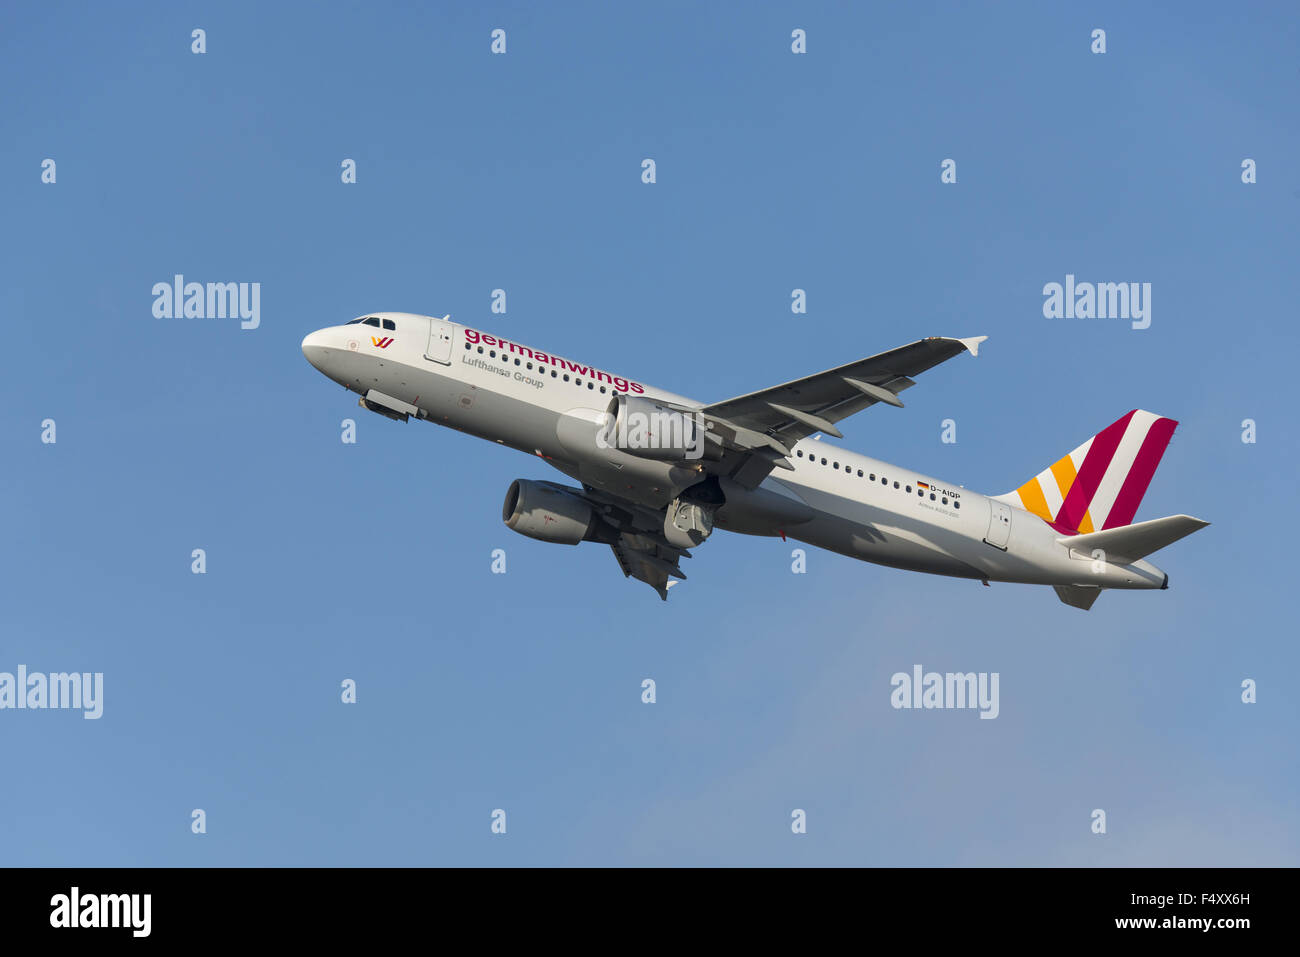 Airbus A320-211 climbing, German Wings, D-AIQP - Stock Image